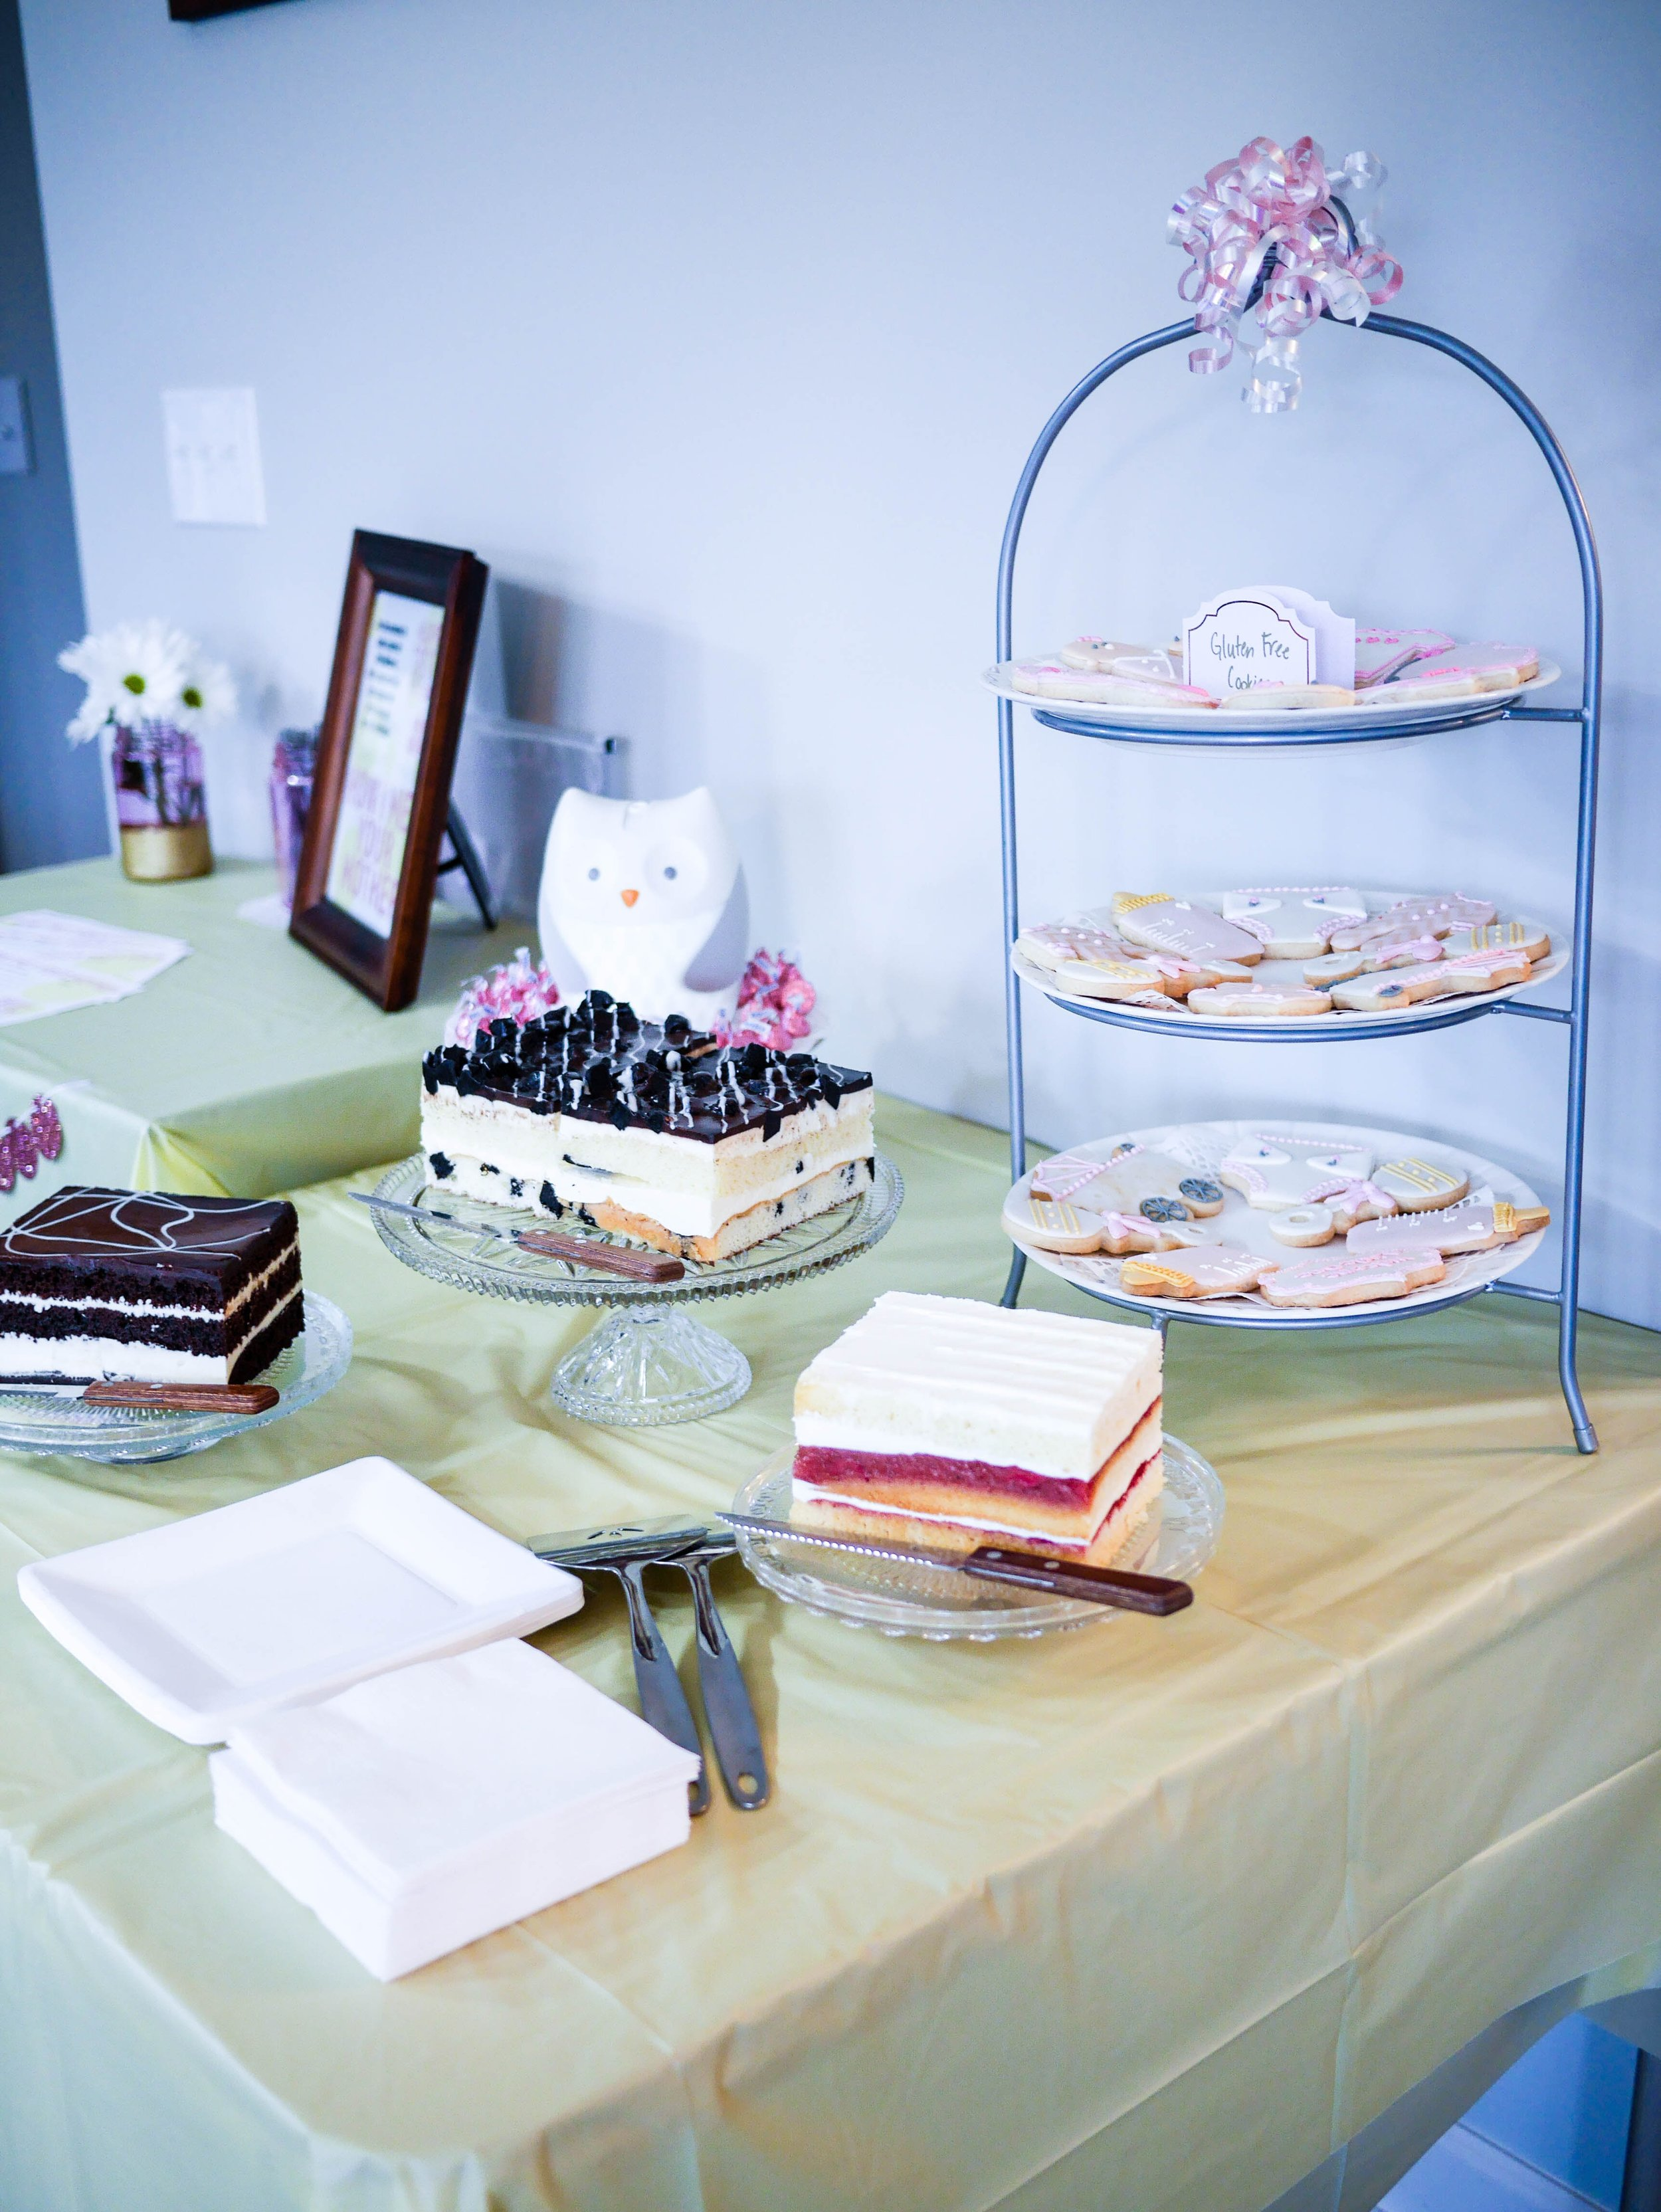 Mini cakes and cookies provide the perfect sweet treat for guests to snack on throughout the party.